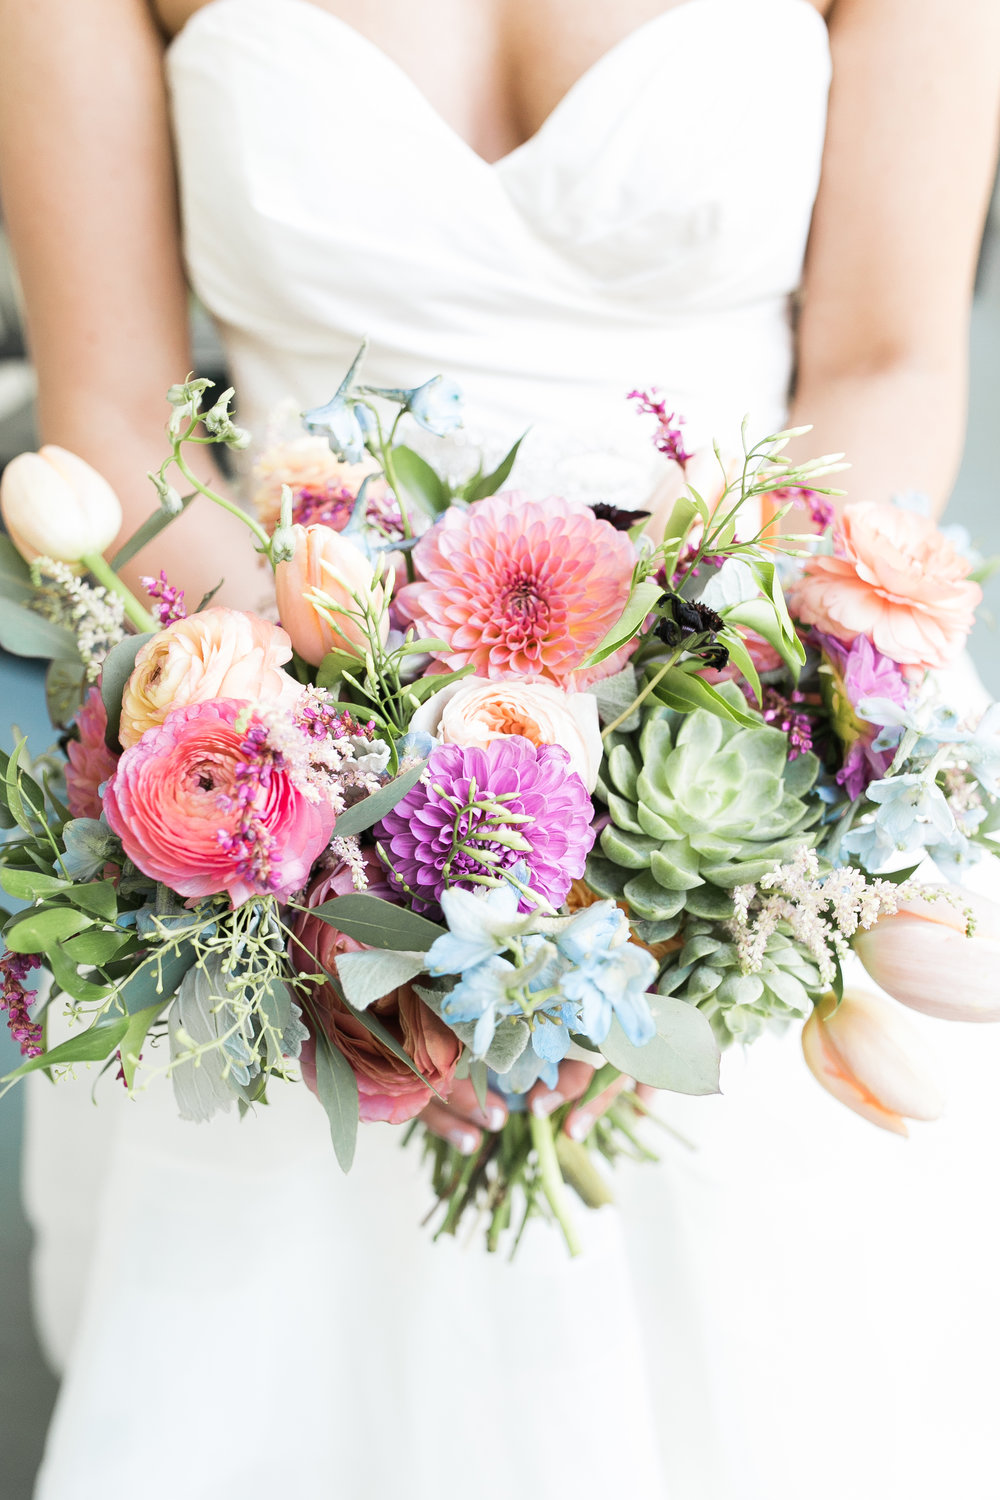 Colorful bouquet by Branch Design Studio for a Charleston, SC wedding Traditional wedding ceremony at Cathedral of St. John the Baptist in Charleston, SC  //  A Lowcountry Wedding Magazine & Blog